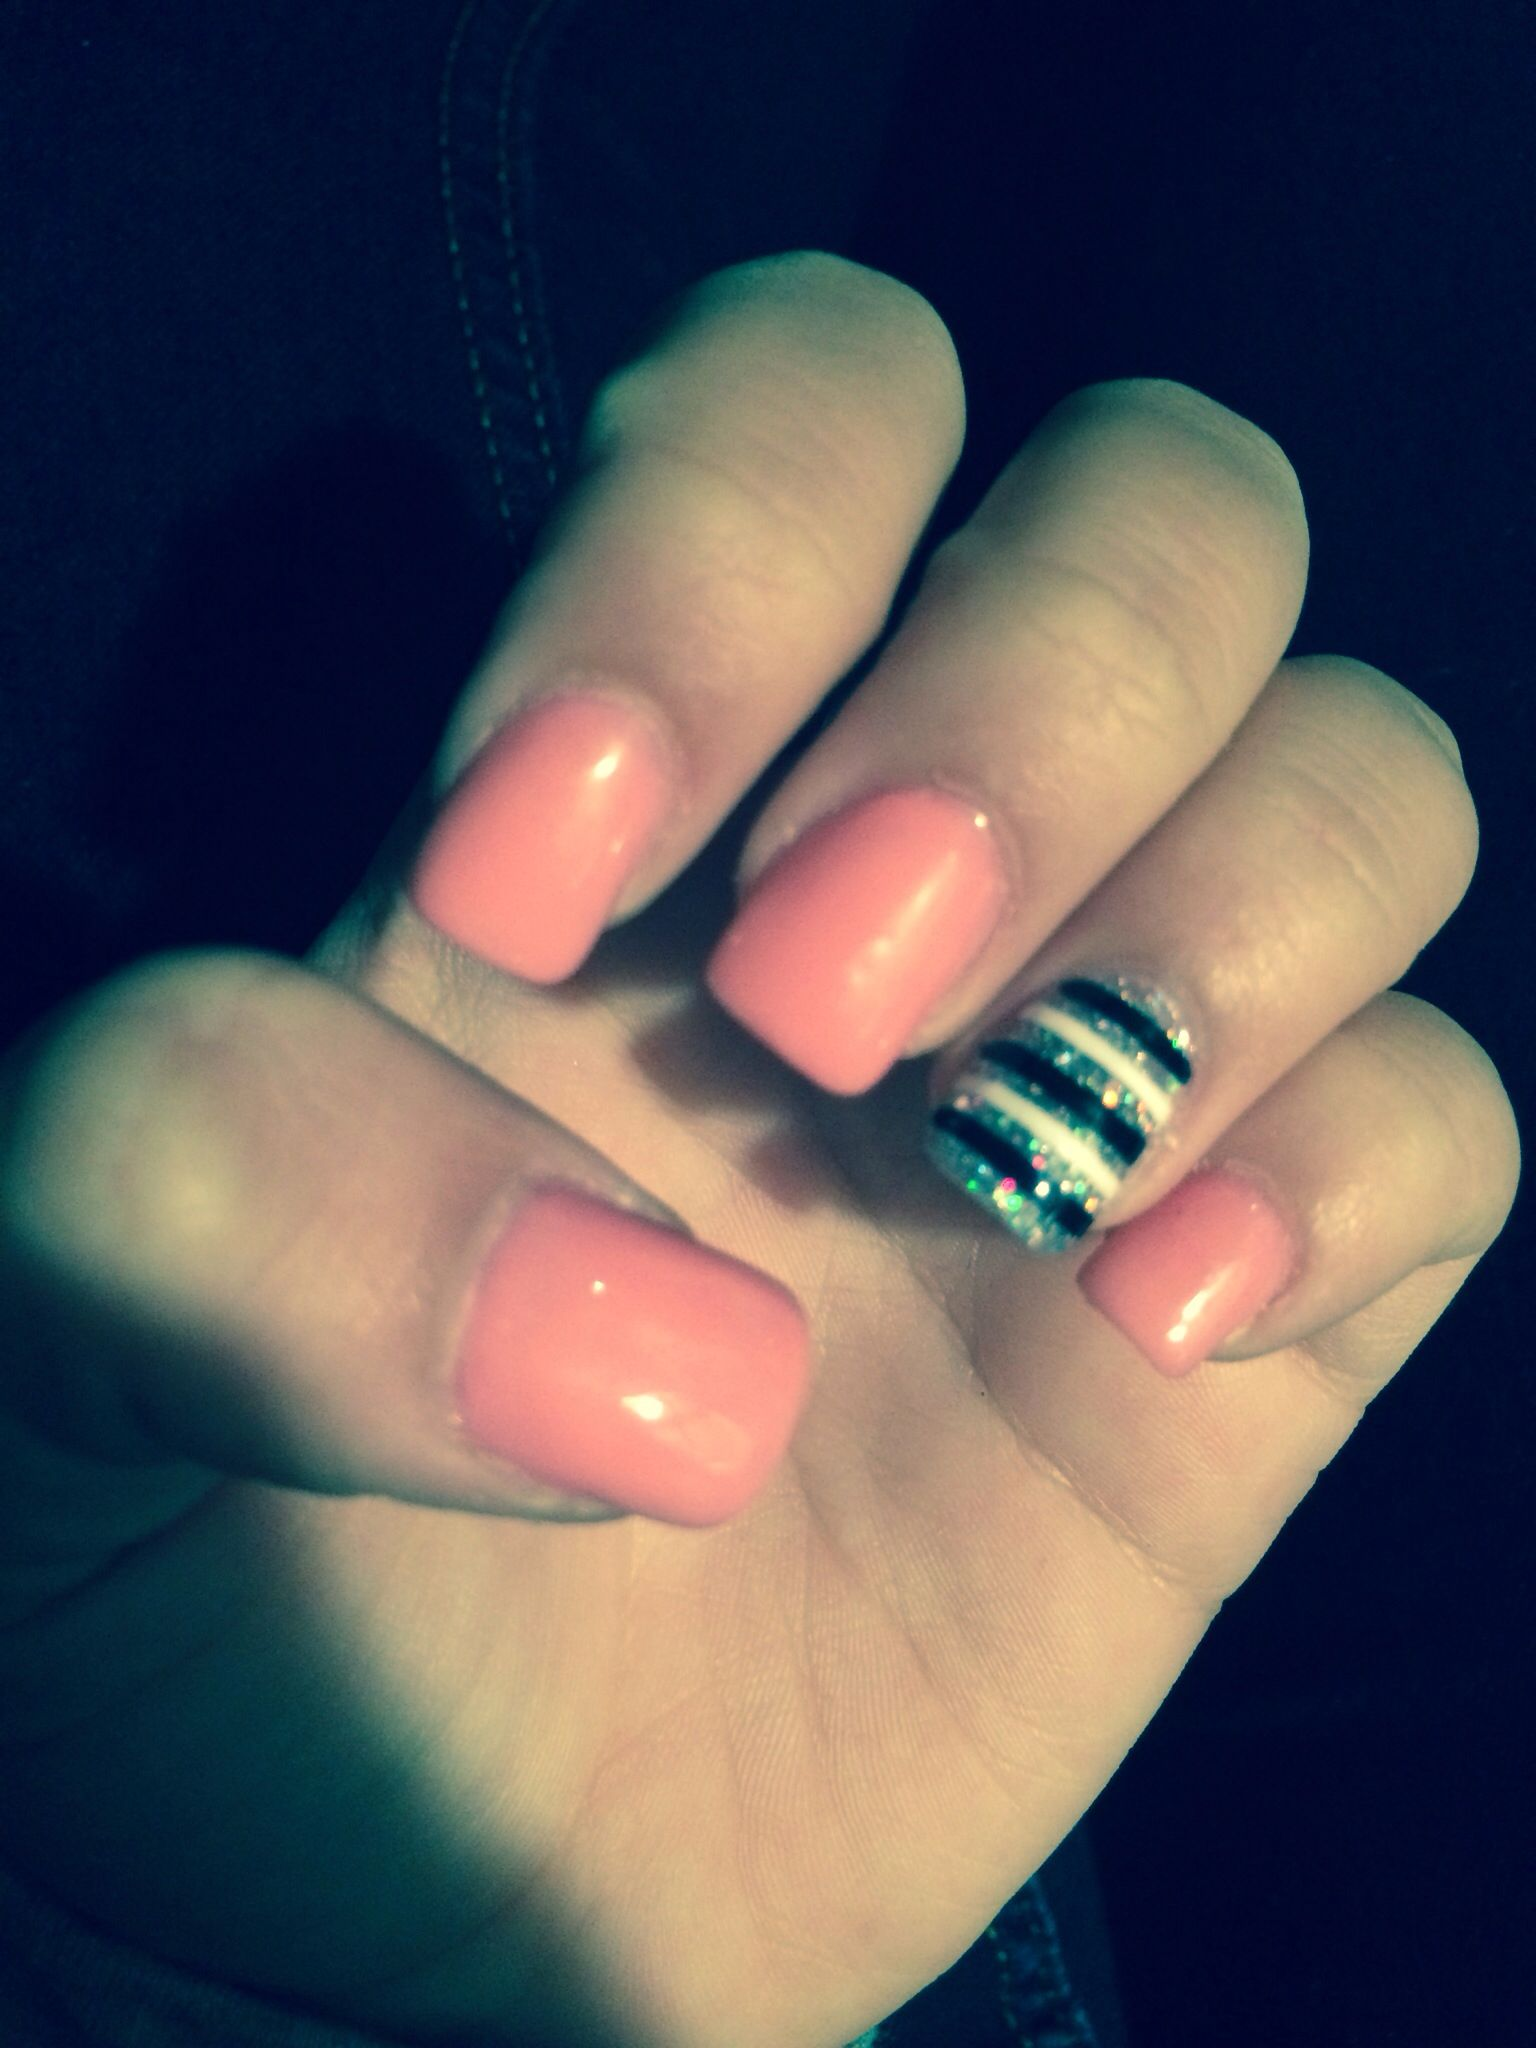 Absolutely LOVE my new nails! Got them done at Fingers ...